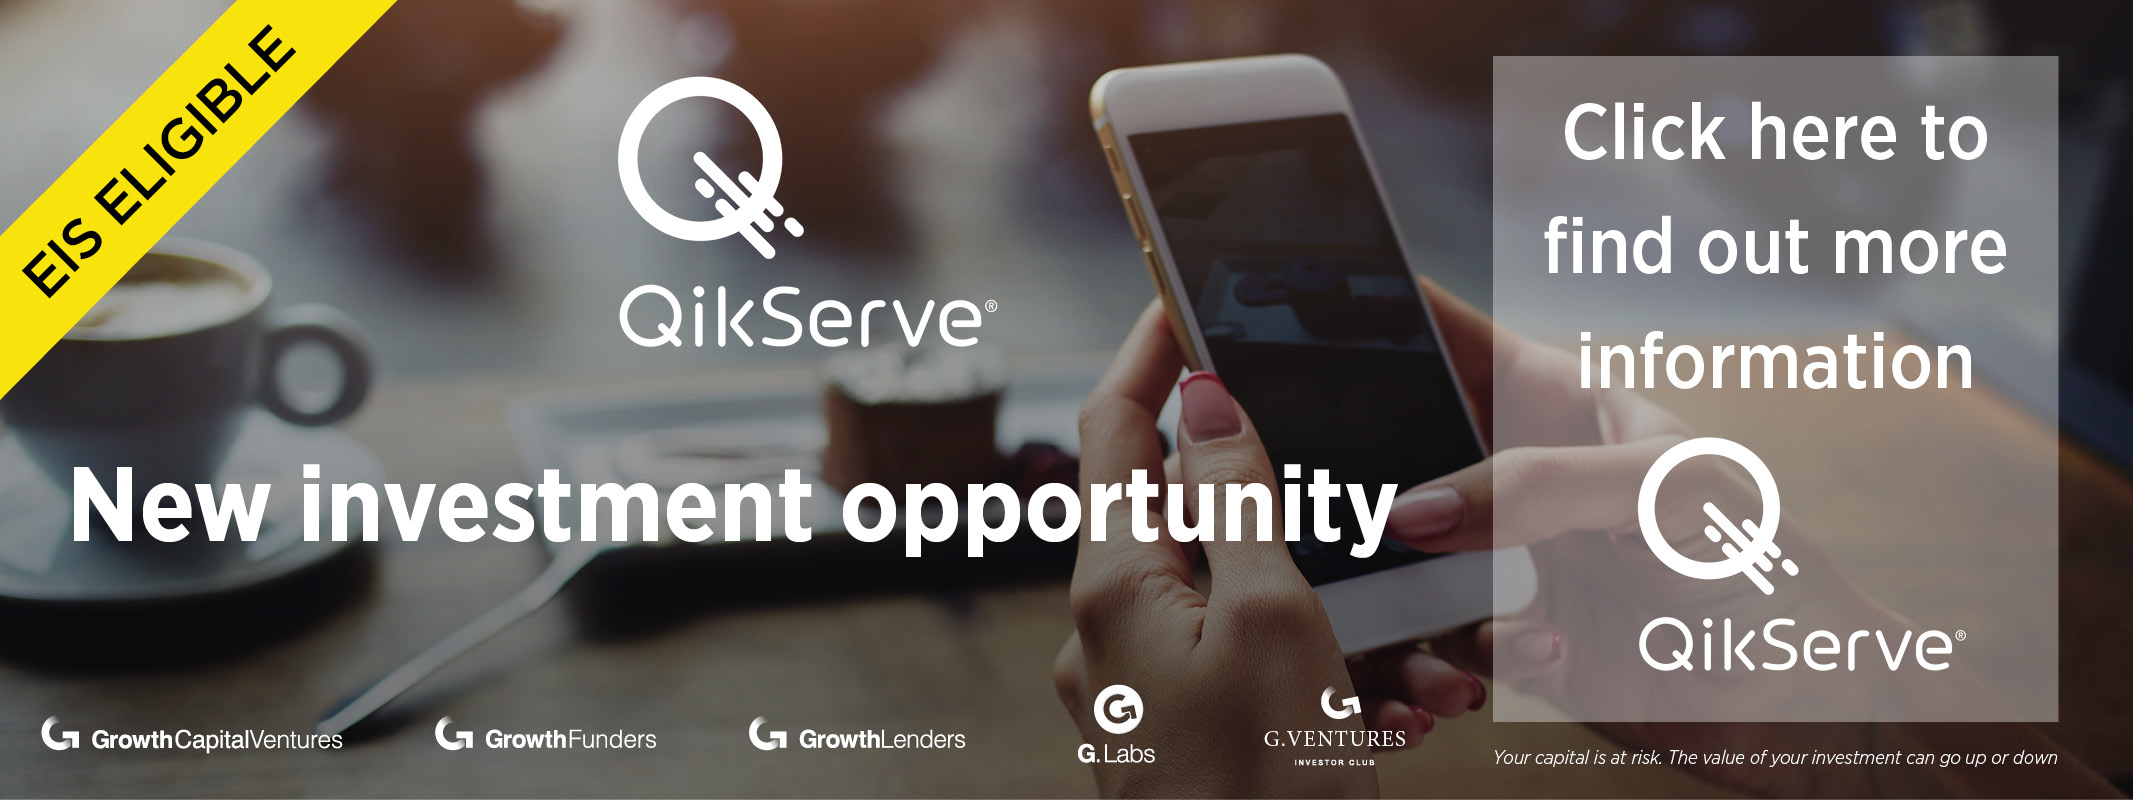 QikServe - new investment opportunity